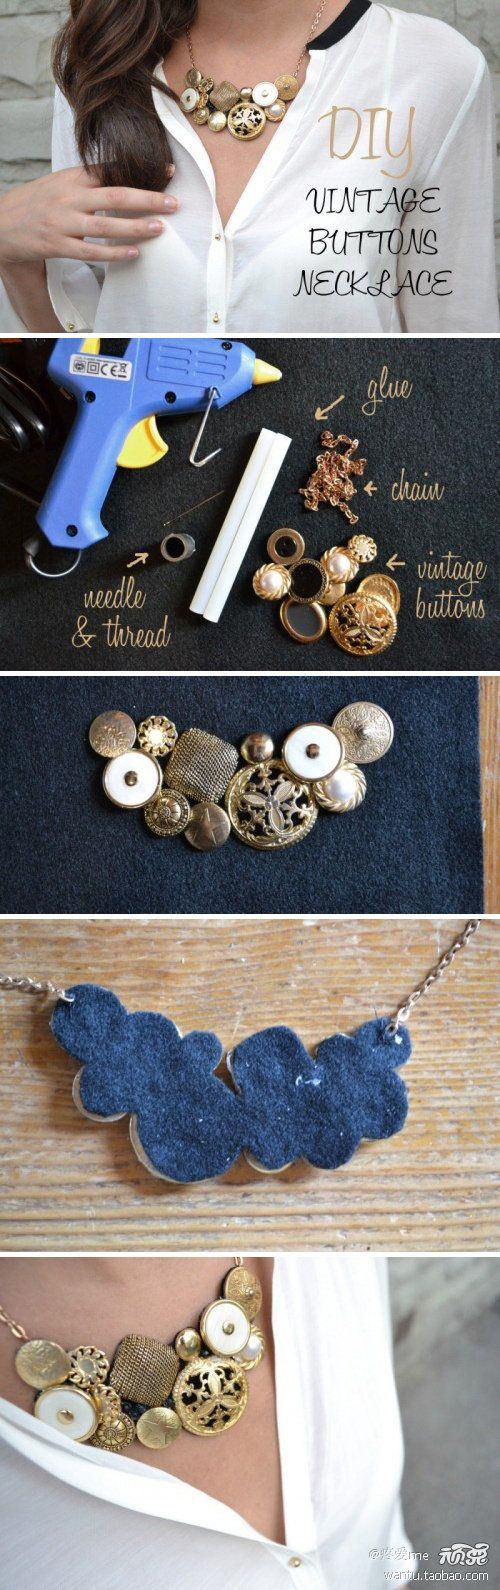 design your own necklace.